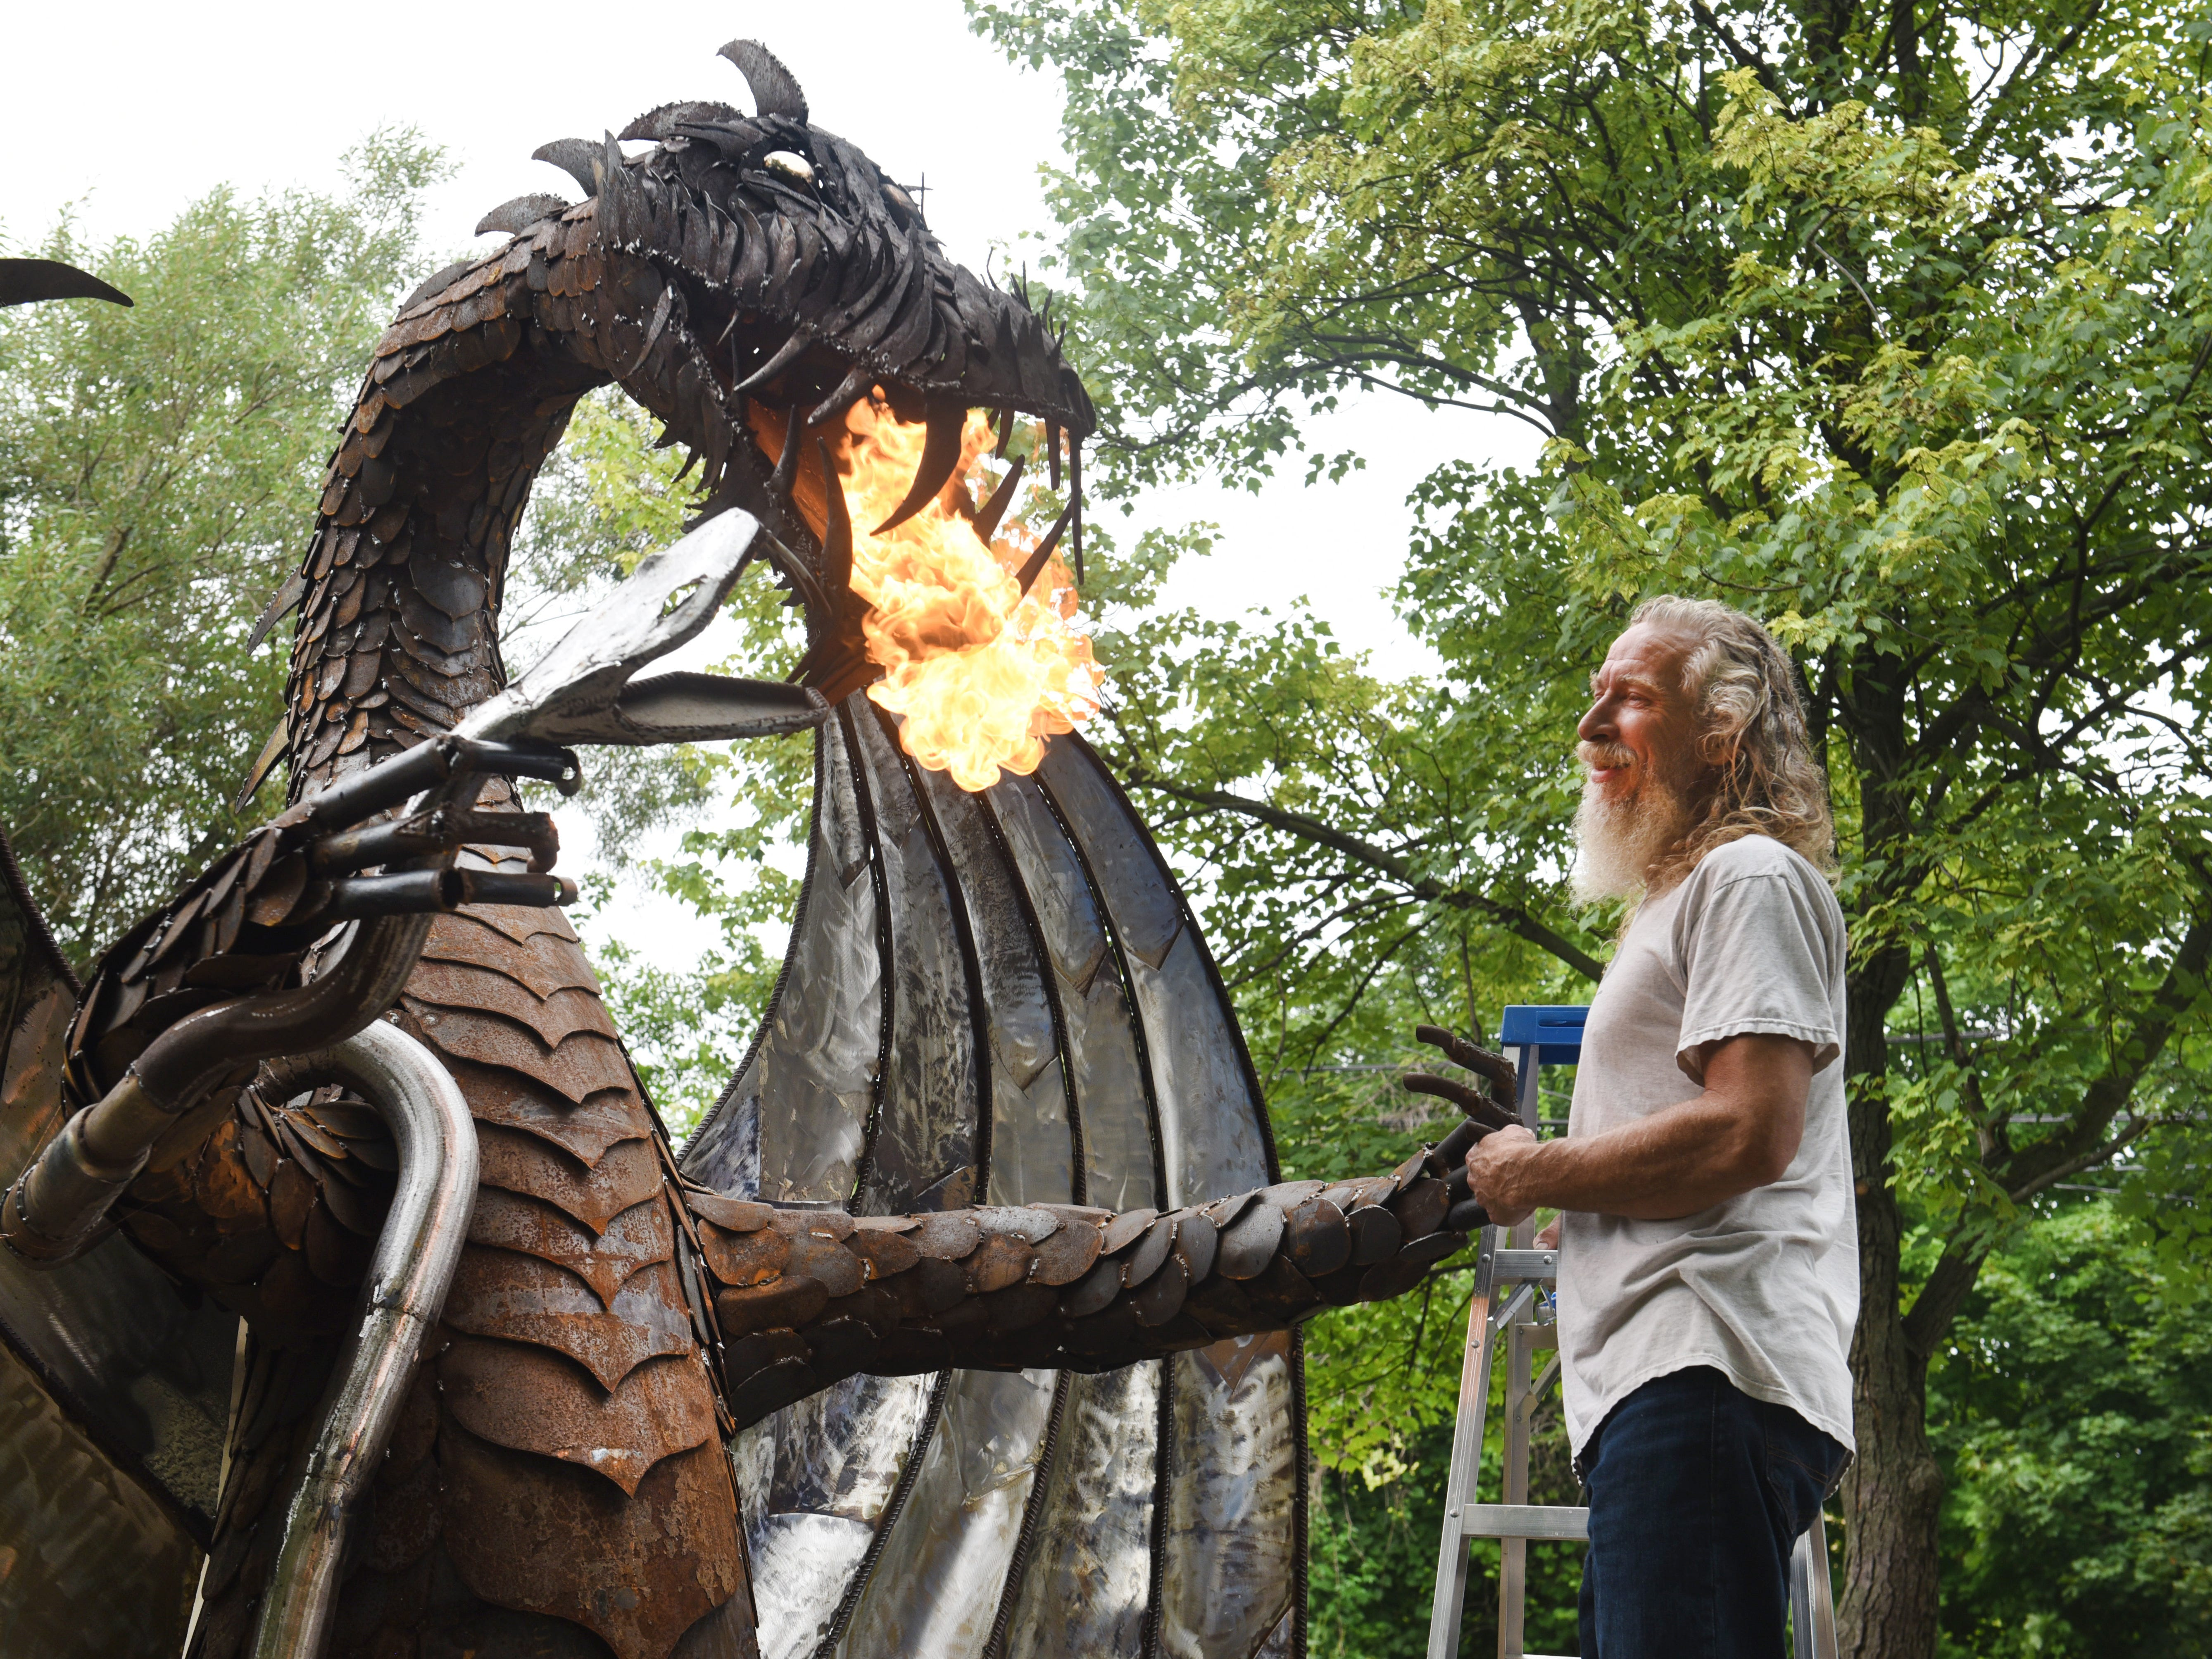 Keith Coleman stands with his 12-foot fire breathing dragon on Thursday, August 16, 2018.